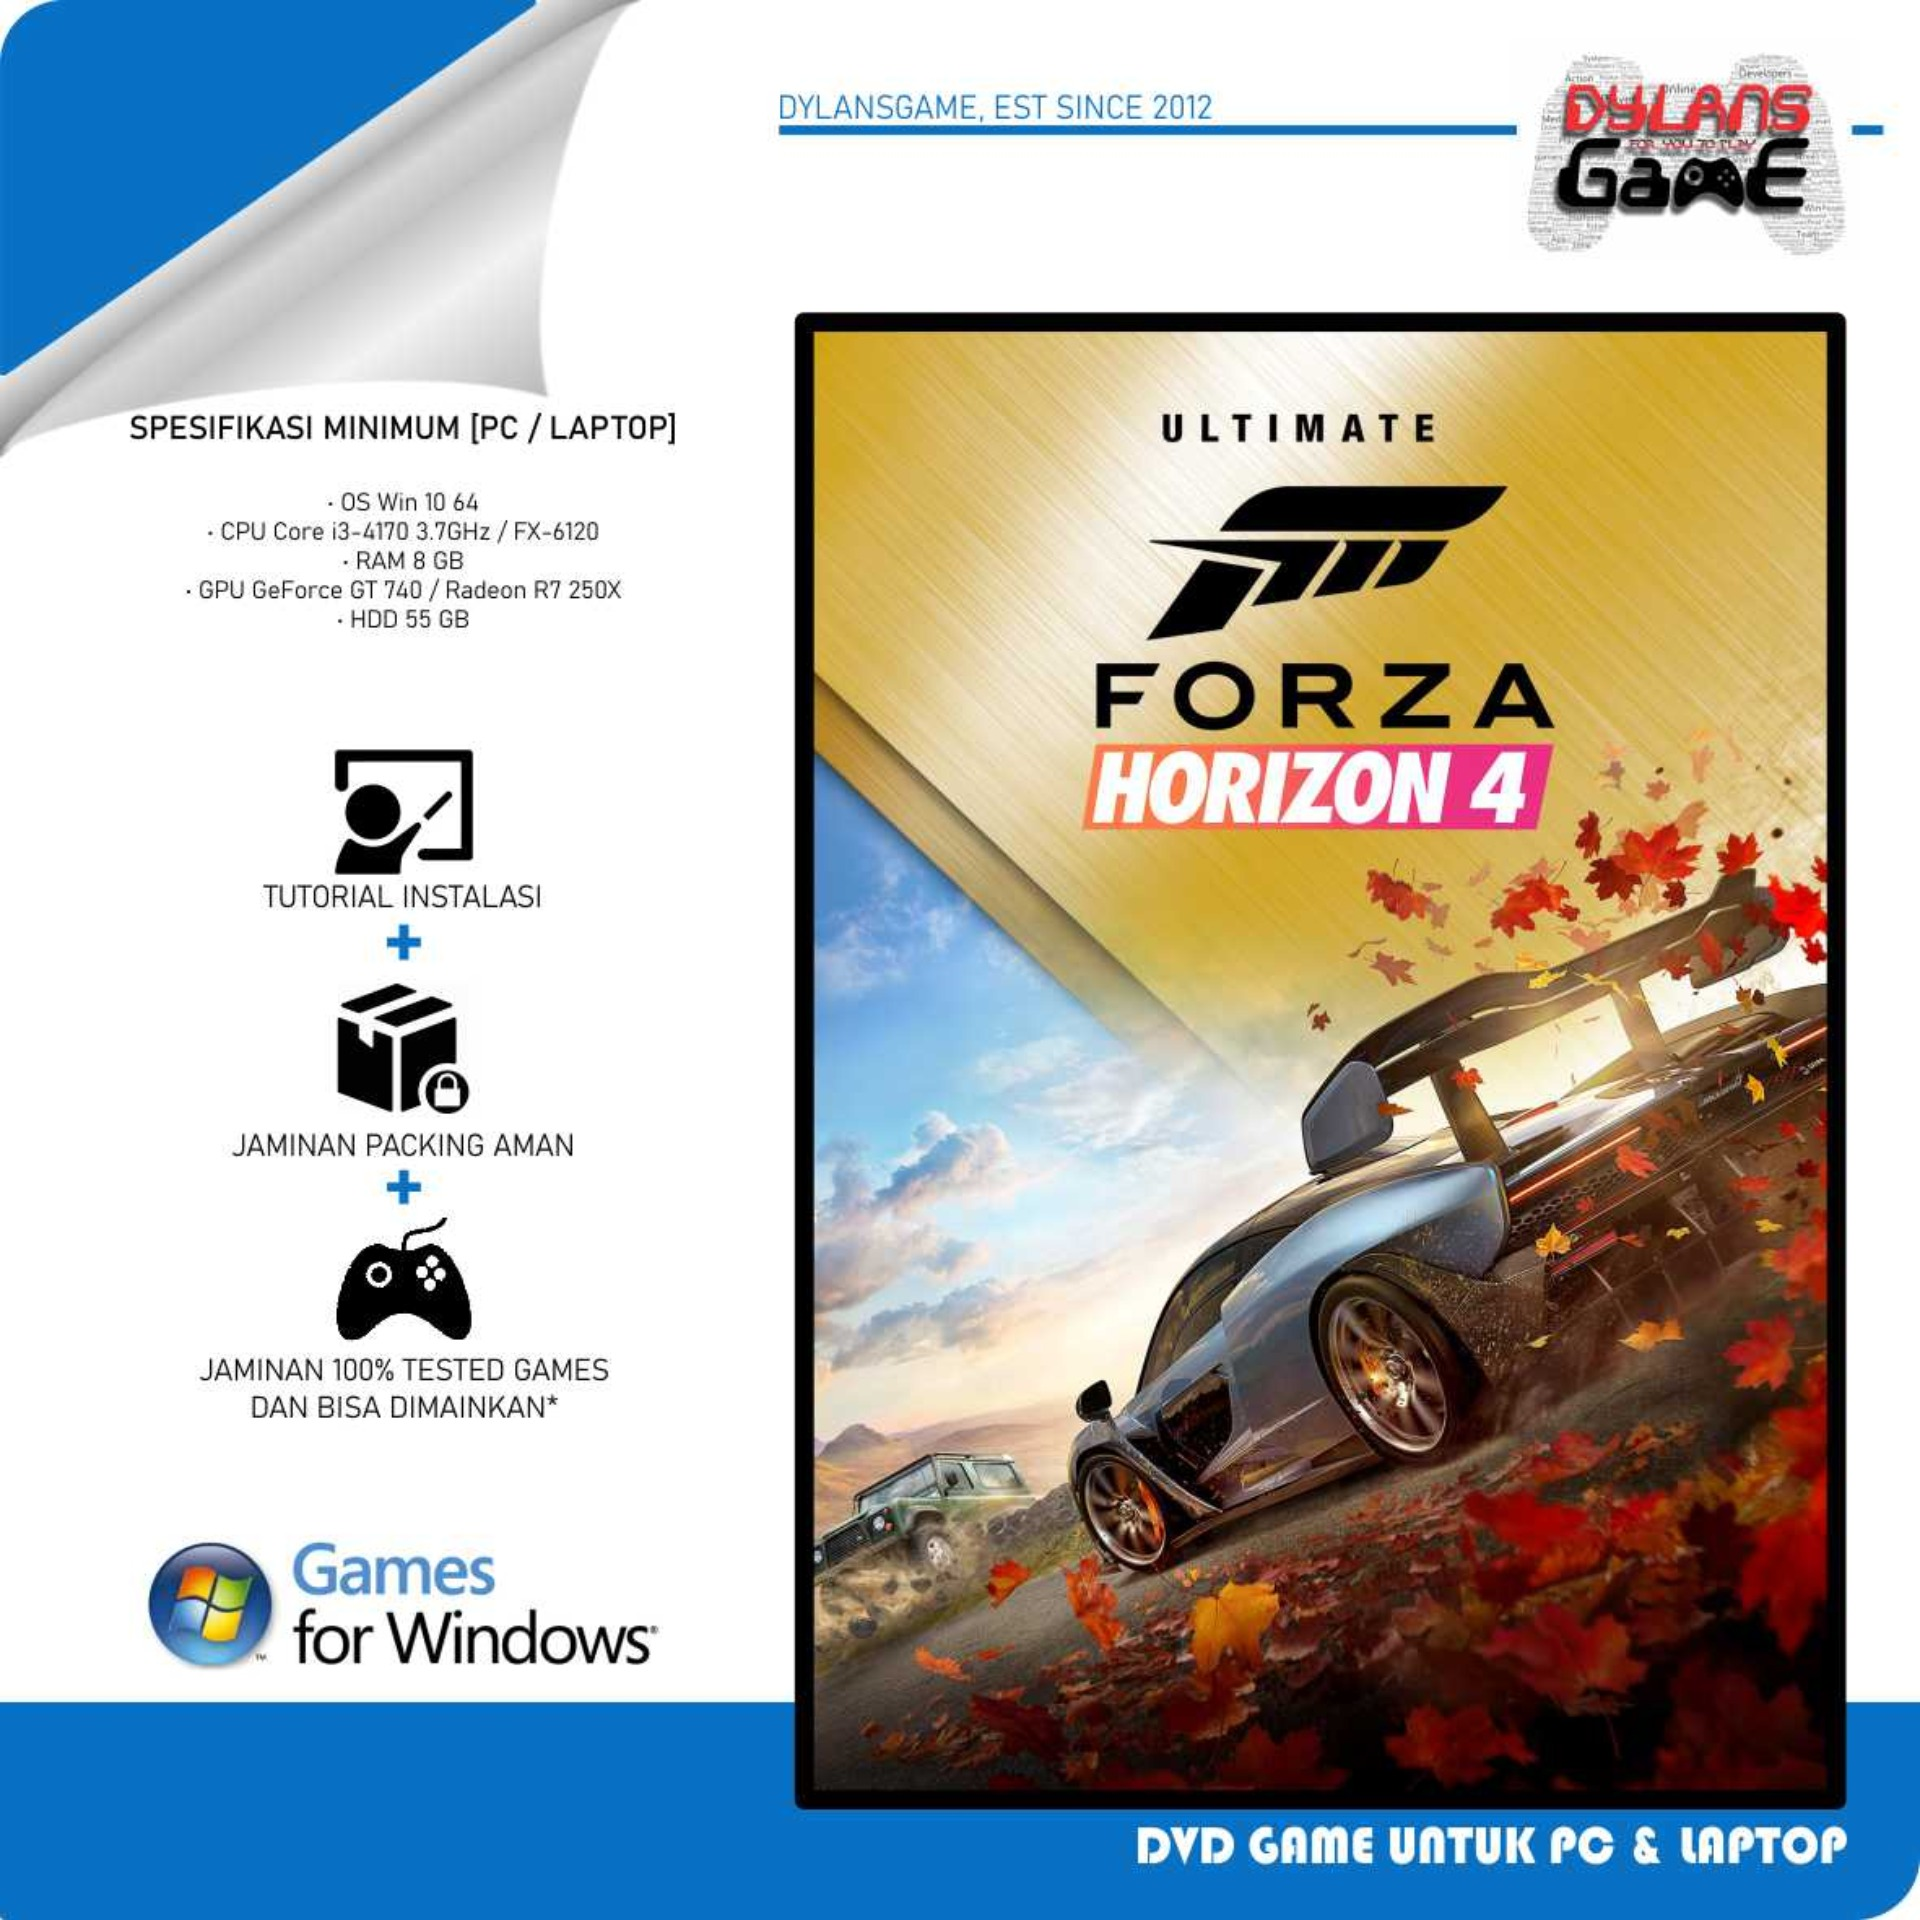 https://www.lazada.co.id/products/forza-horizon-4-ultimate-edition-pc-game-dvd-game-pc-laptop-i647700096-s900668554.html